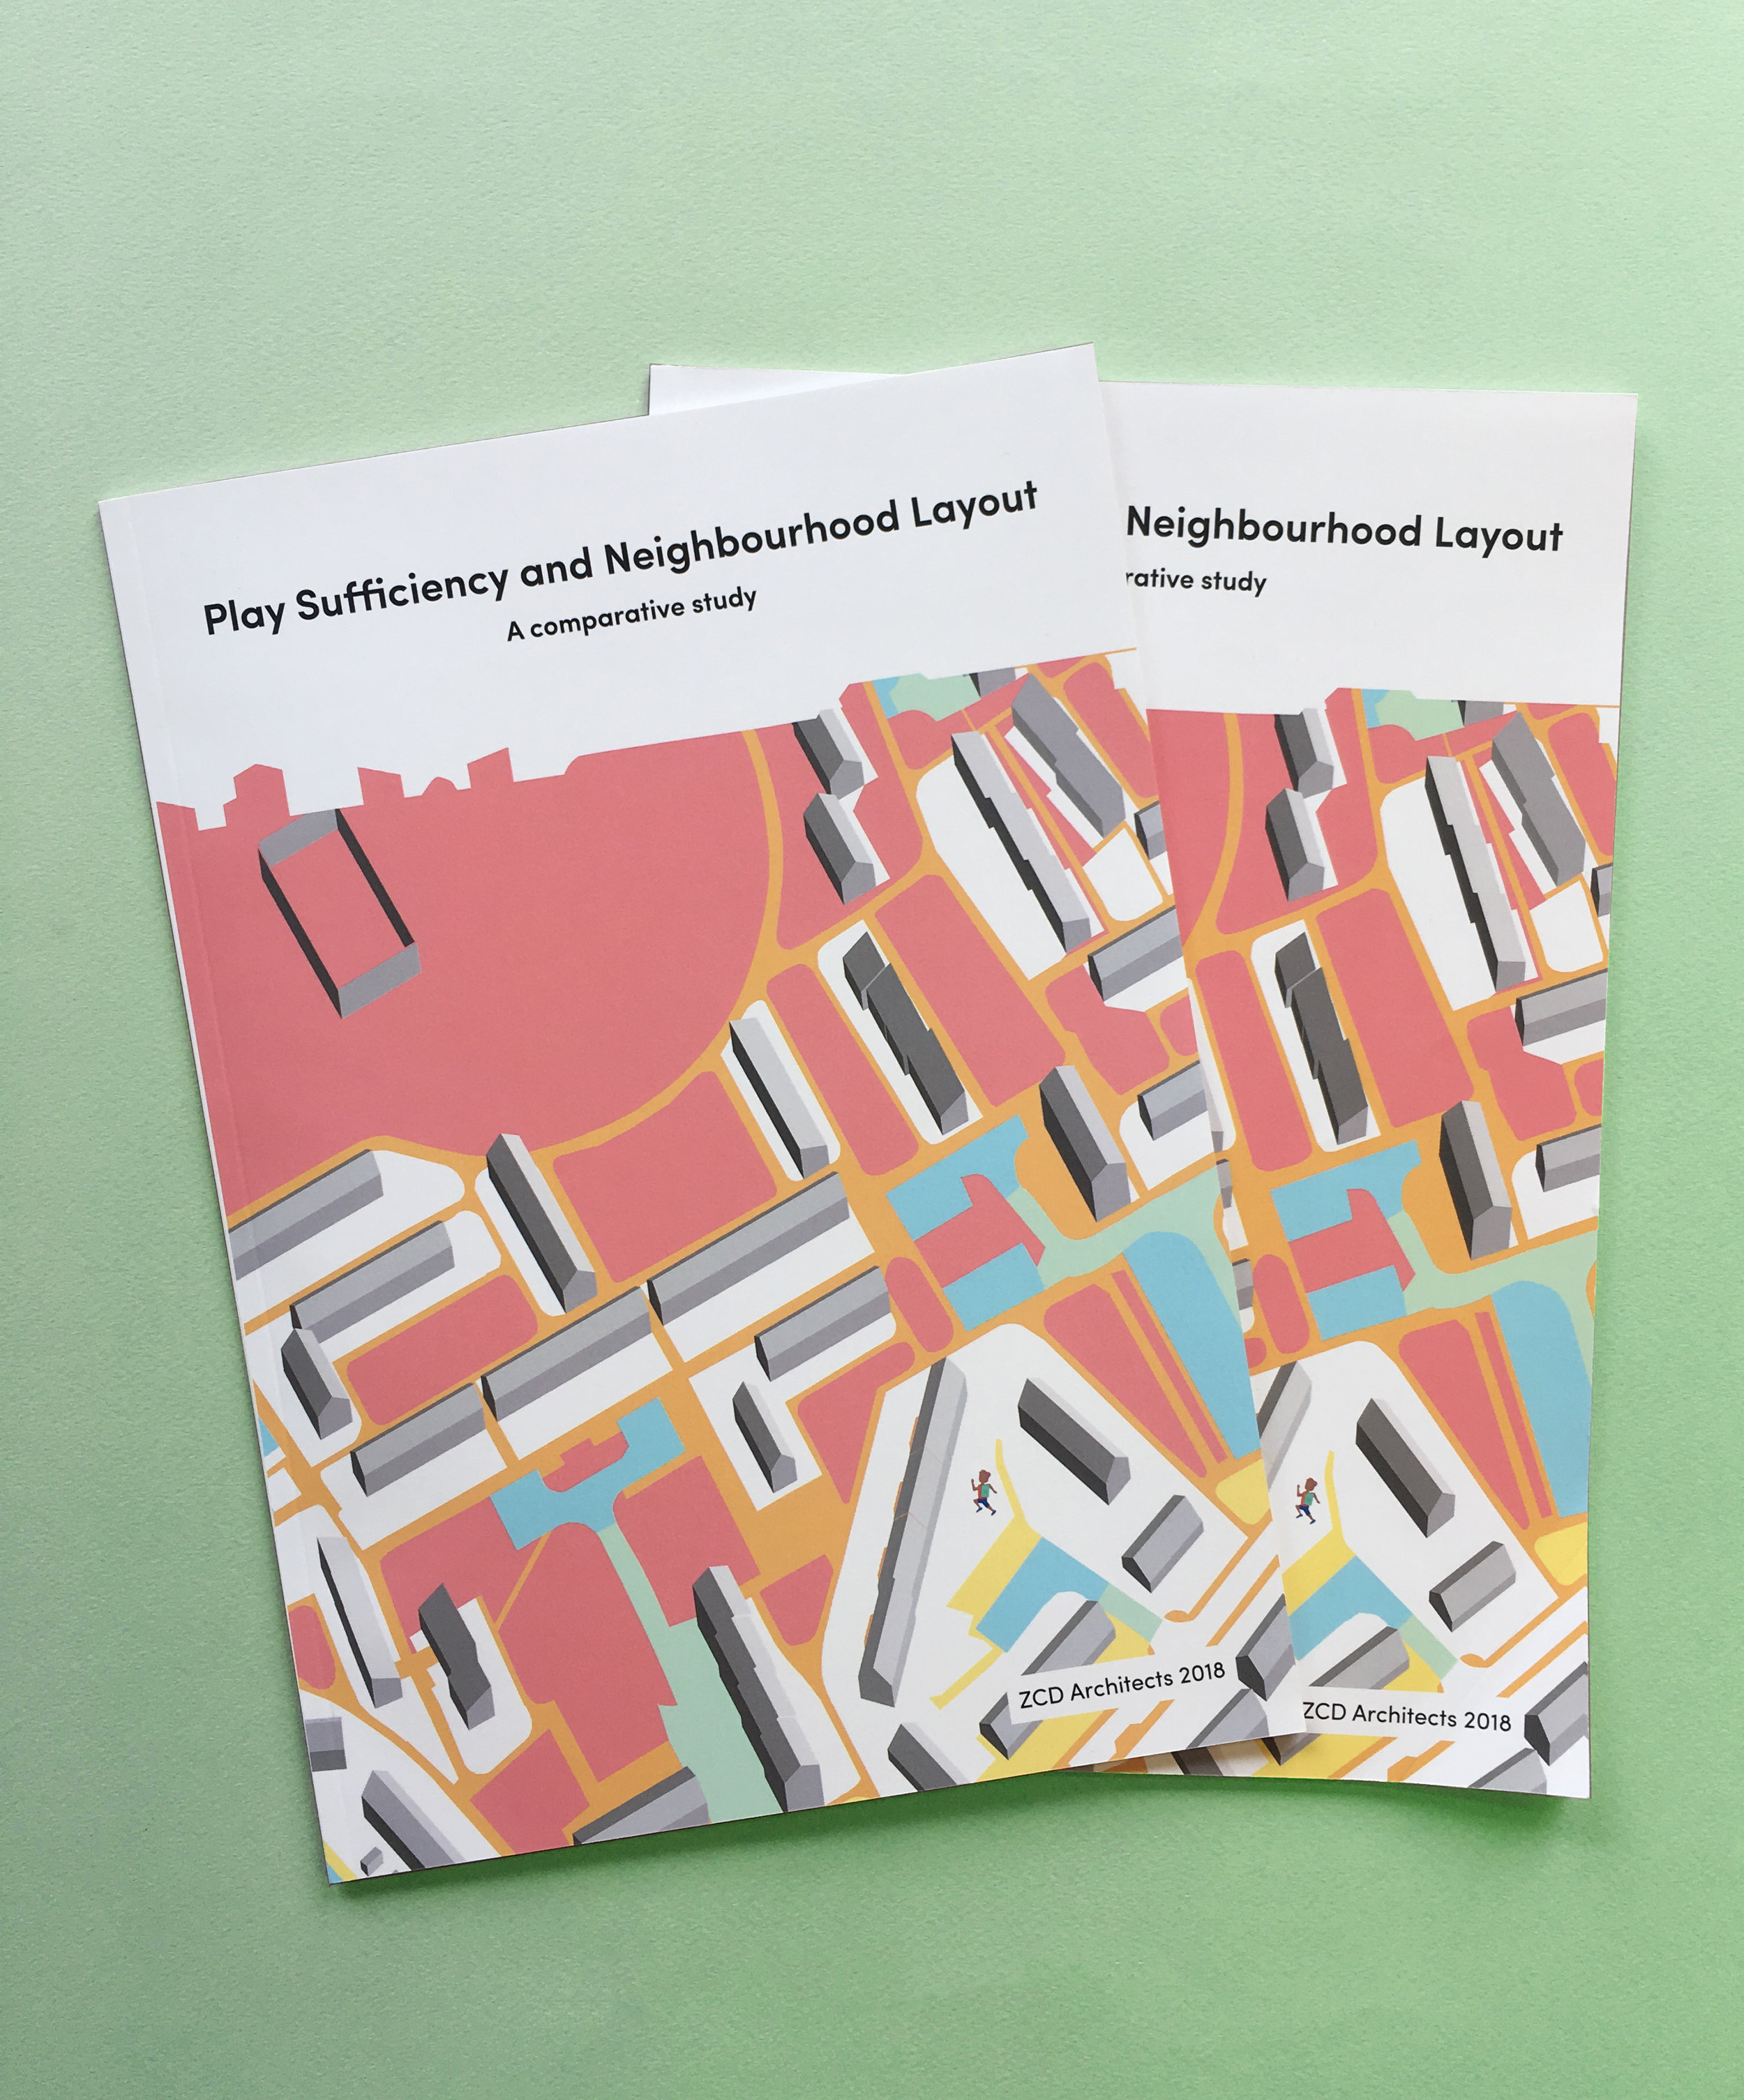 Play Sufficiency and Neighbourhood Layout